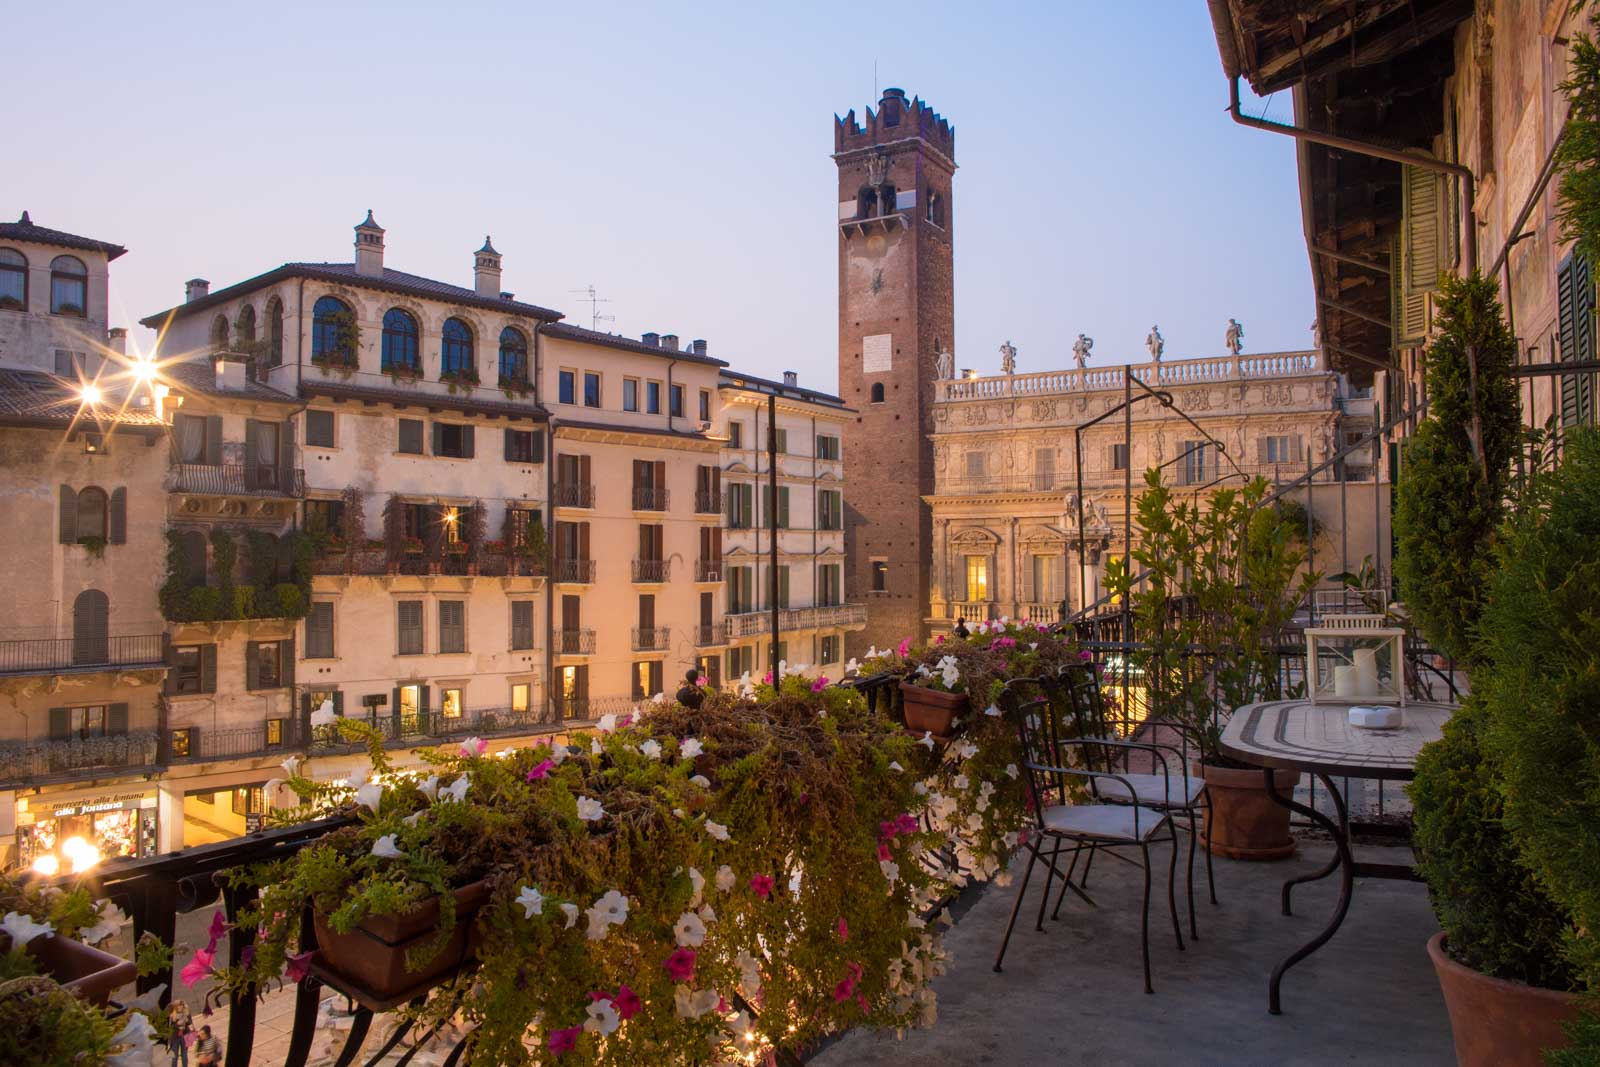 The view at dusk from the balcony of the Piazza Erbe Suite of Corte Realdi. ©Kevin Day/Opening a Bottle